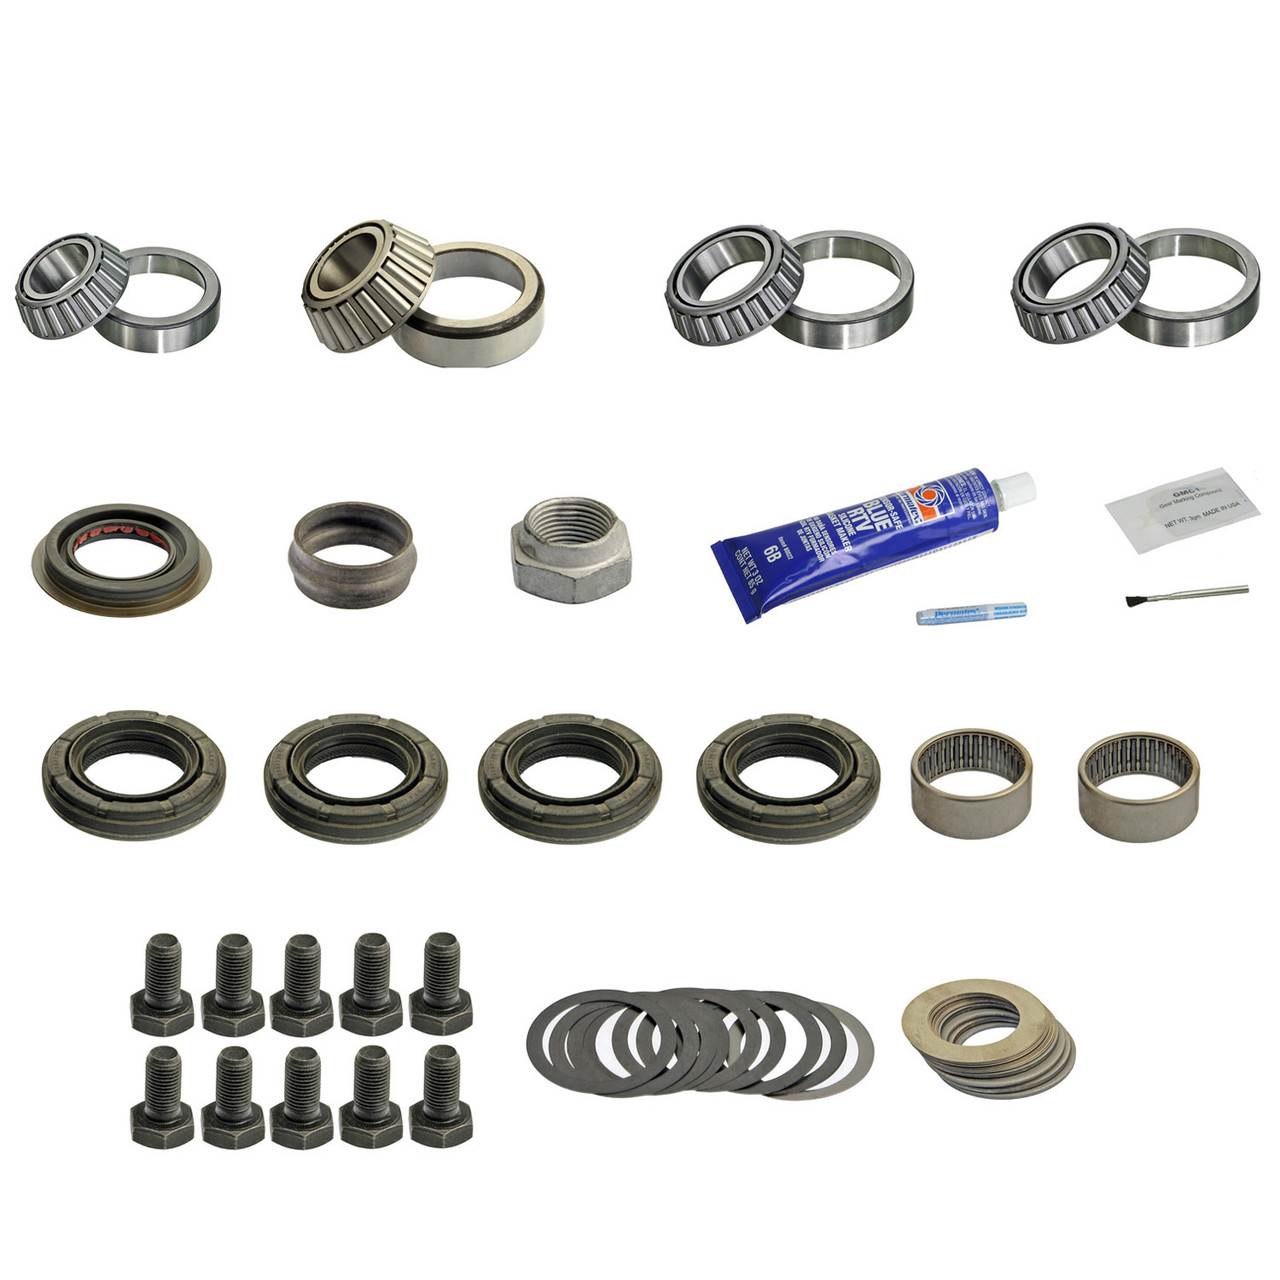 DRK321MK GM 8.5 Master Timken Differential Bearing Kit 1999 /& Earlier Non-Posi